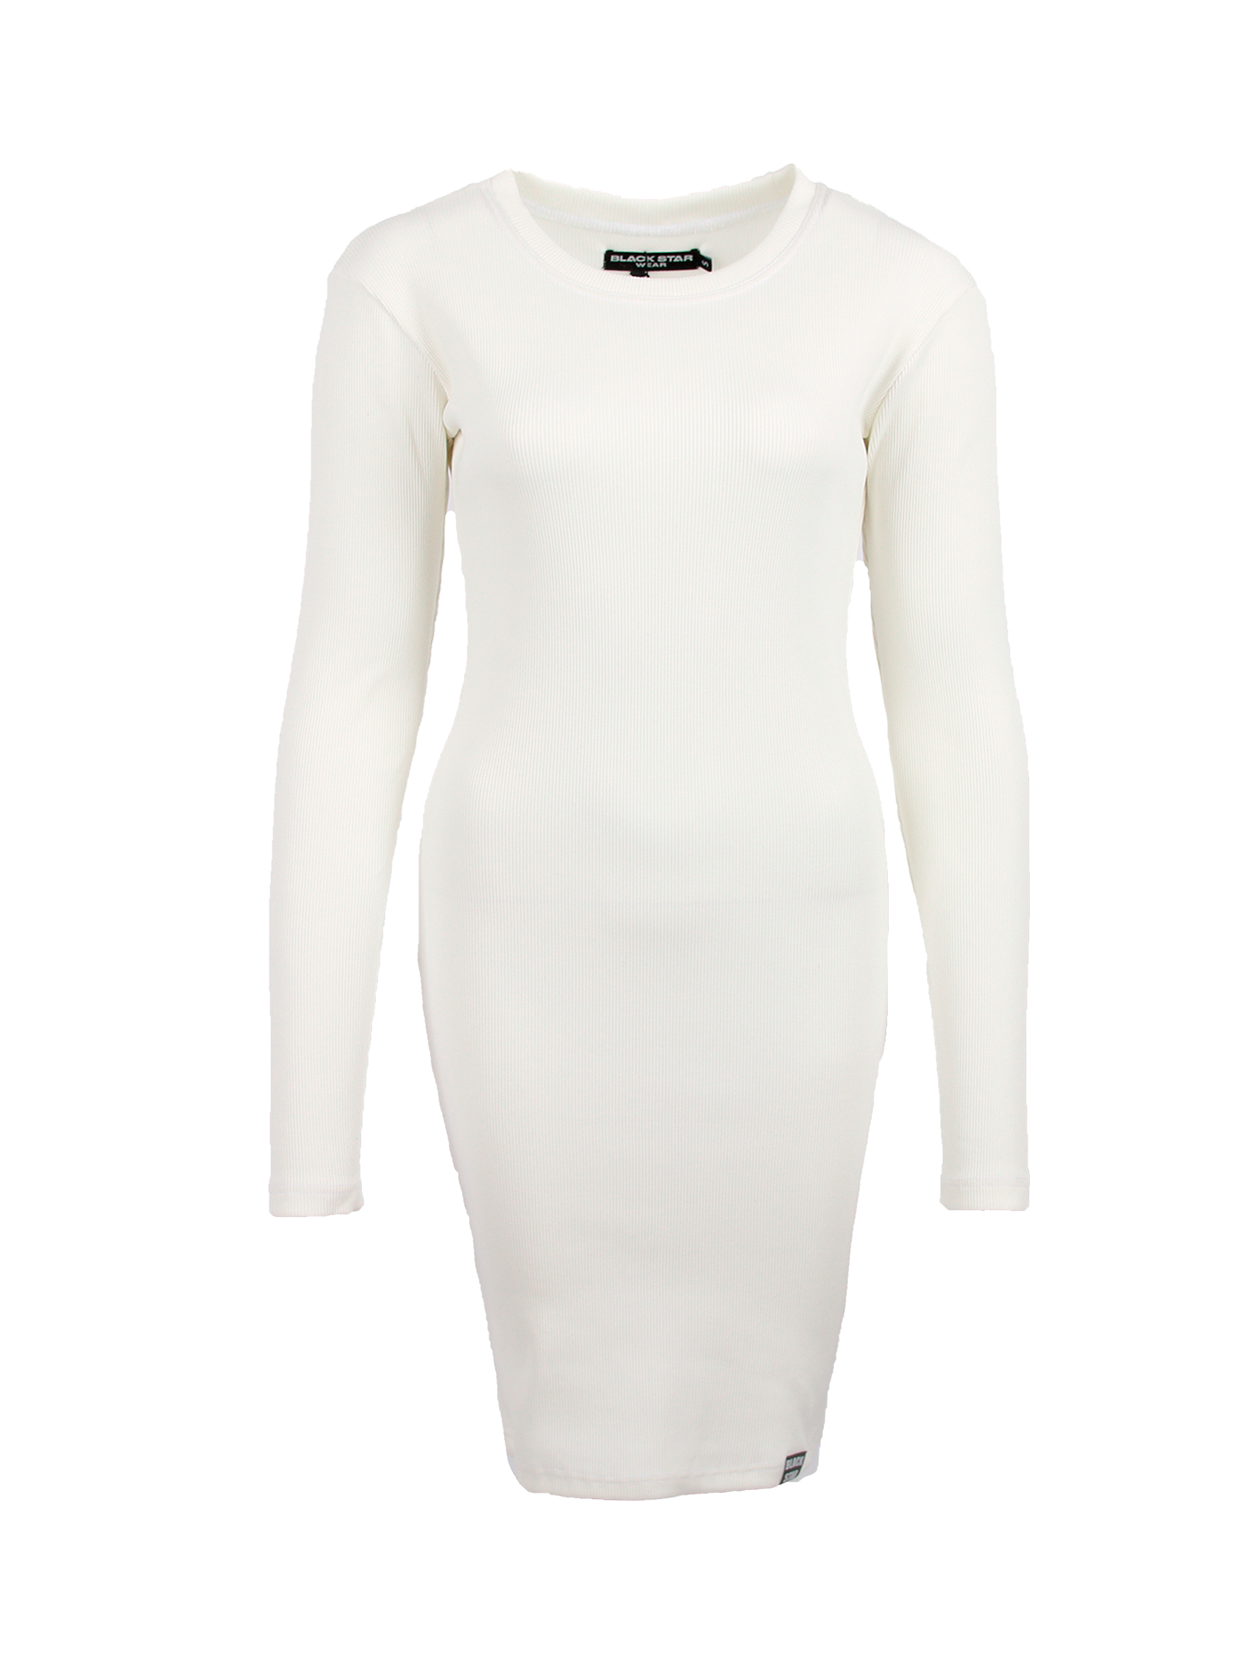 Womens dress MulticolourWomens dress by Black Star Wear. Slim fit, o-neck, lond sleeves. Small black label with #blackstar on the front. Natural cotton (90%) and lycra (10%) blend.<br><br>size: L<br>color: Beige<br>gender: female